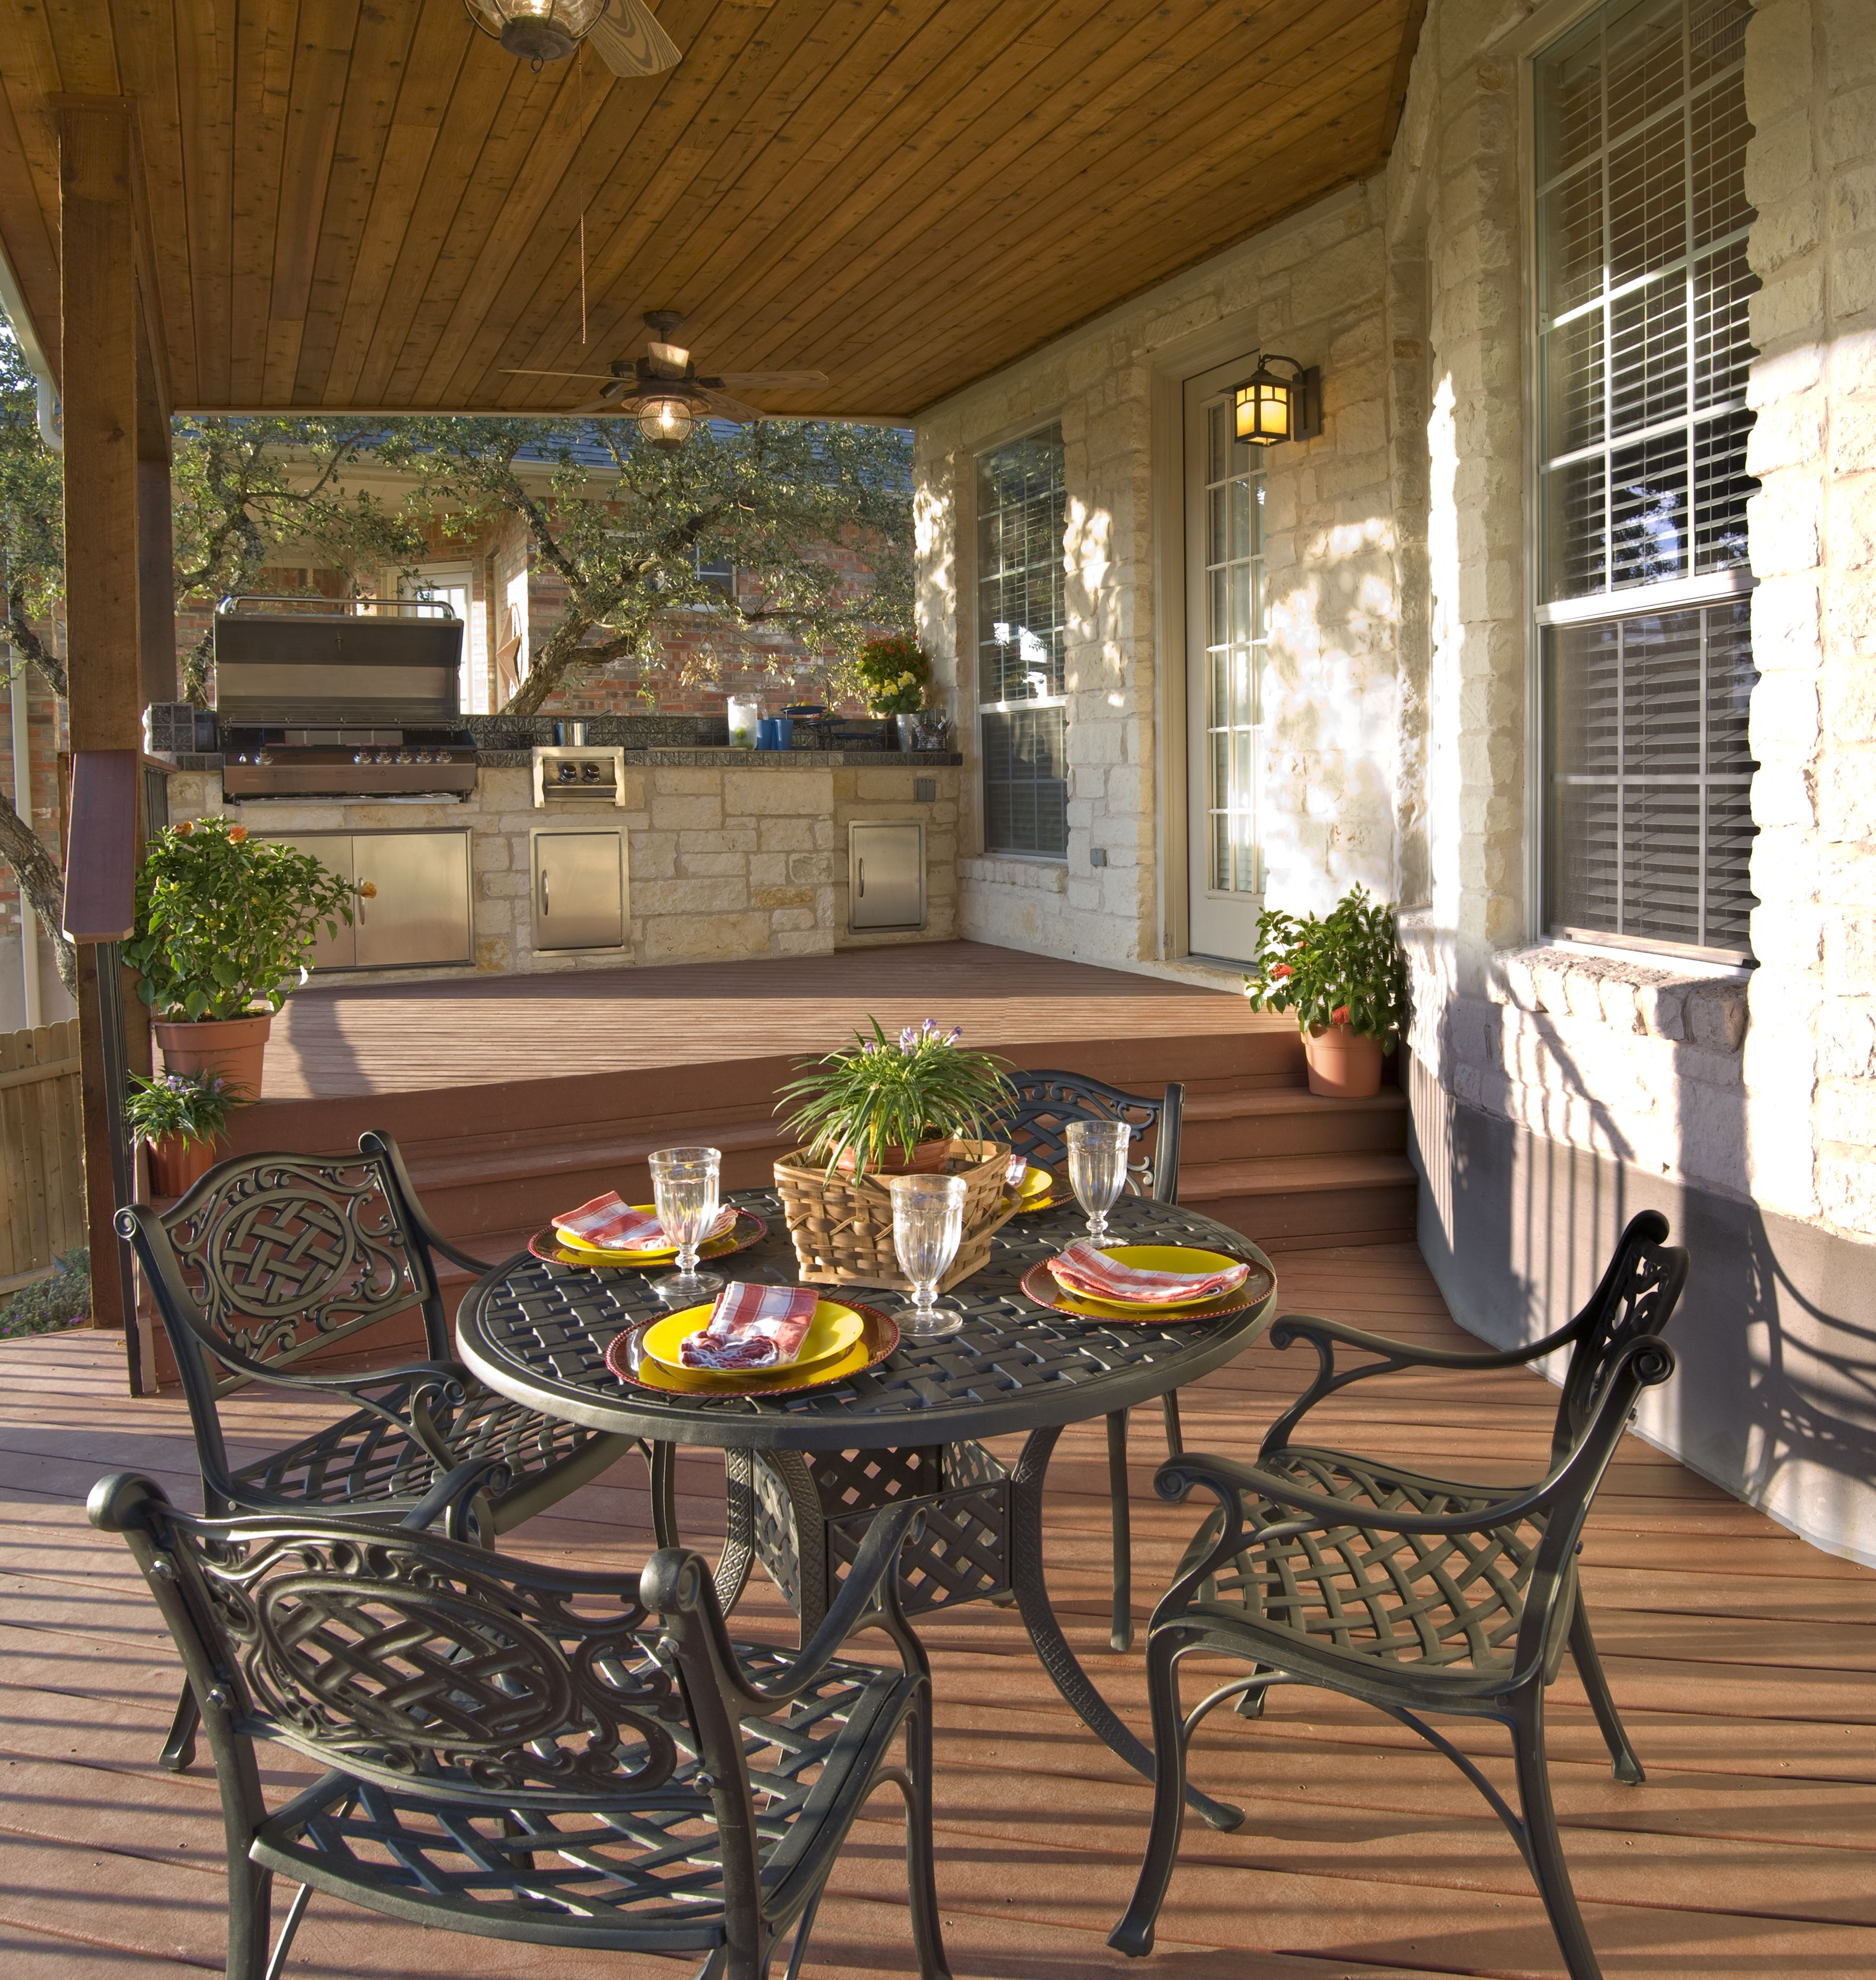 Outdoor Kitchen Design Ideas  With A Multilevel Deck  Amazing Pleasing Outdoor Kitchen Designs Ideas Inspiration